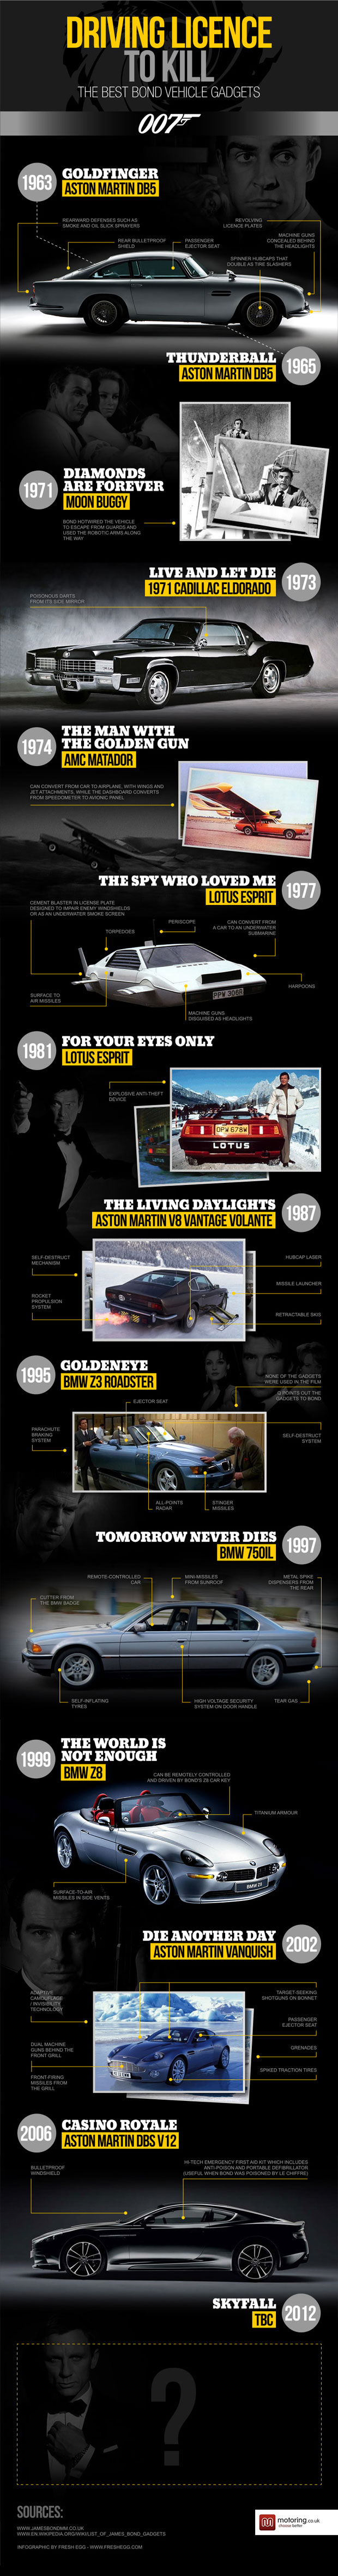 Bond Cars Gadgets-Infographic